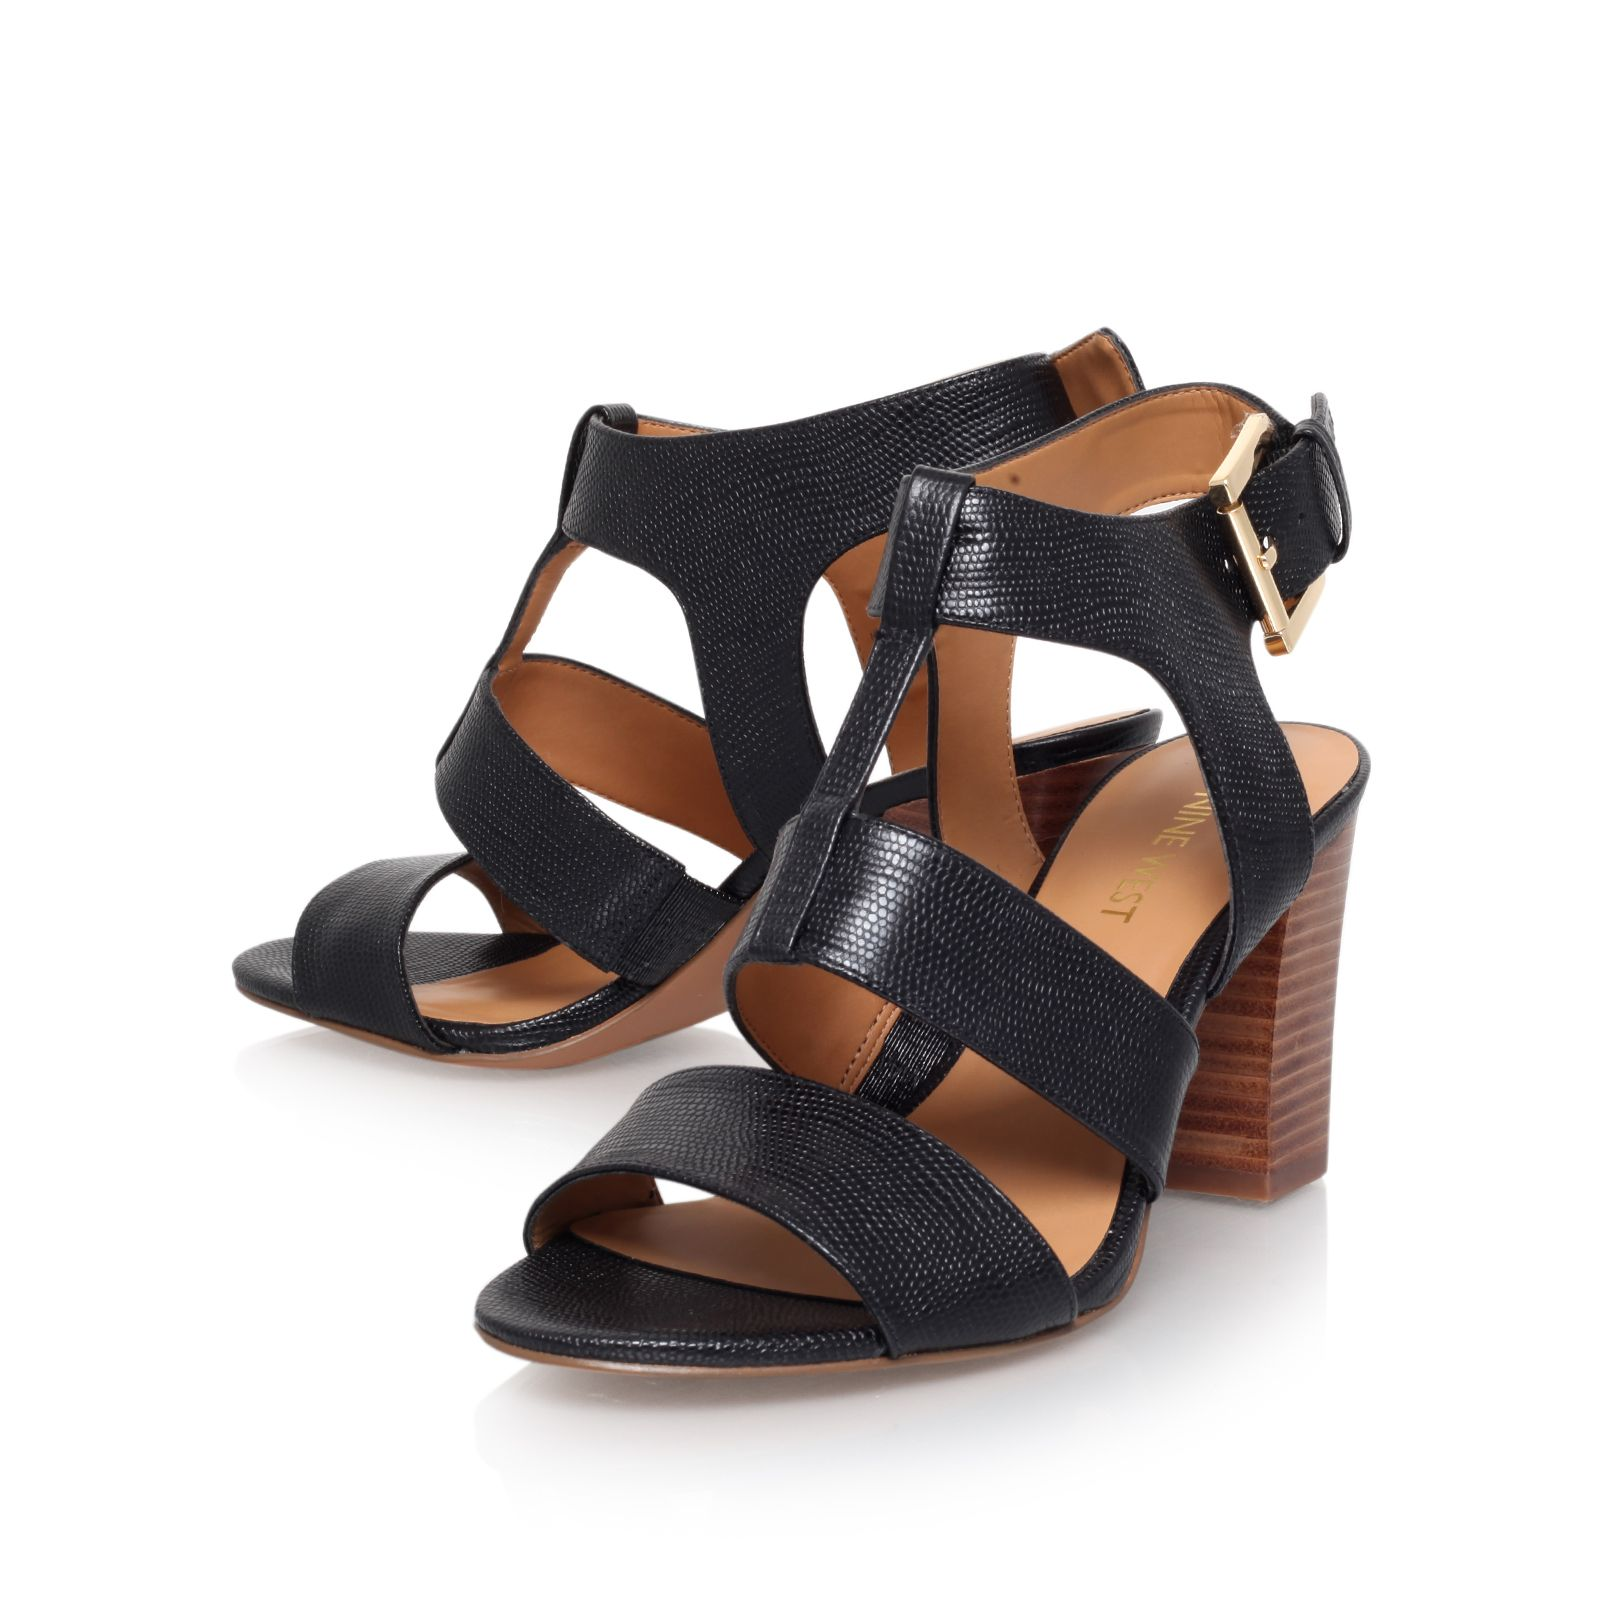 Jelanie mid heeled sandals